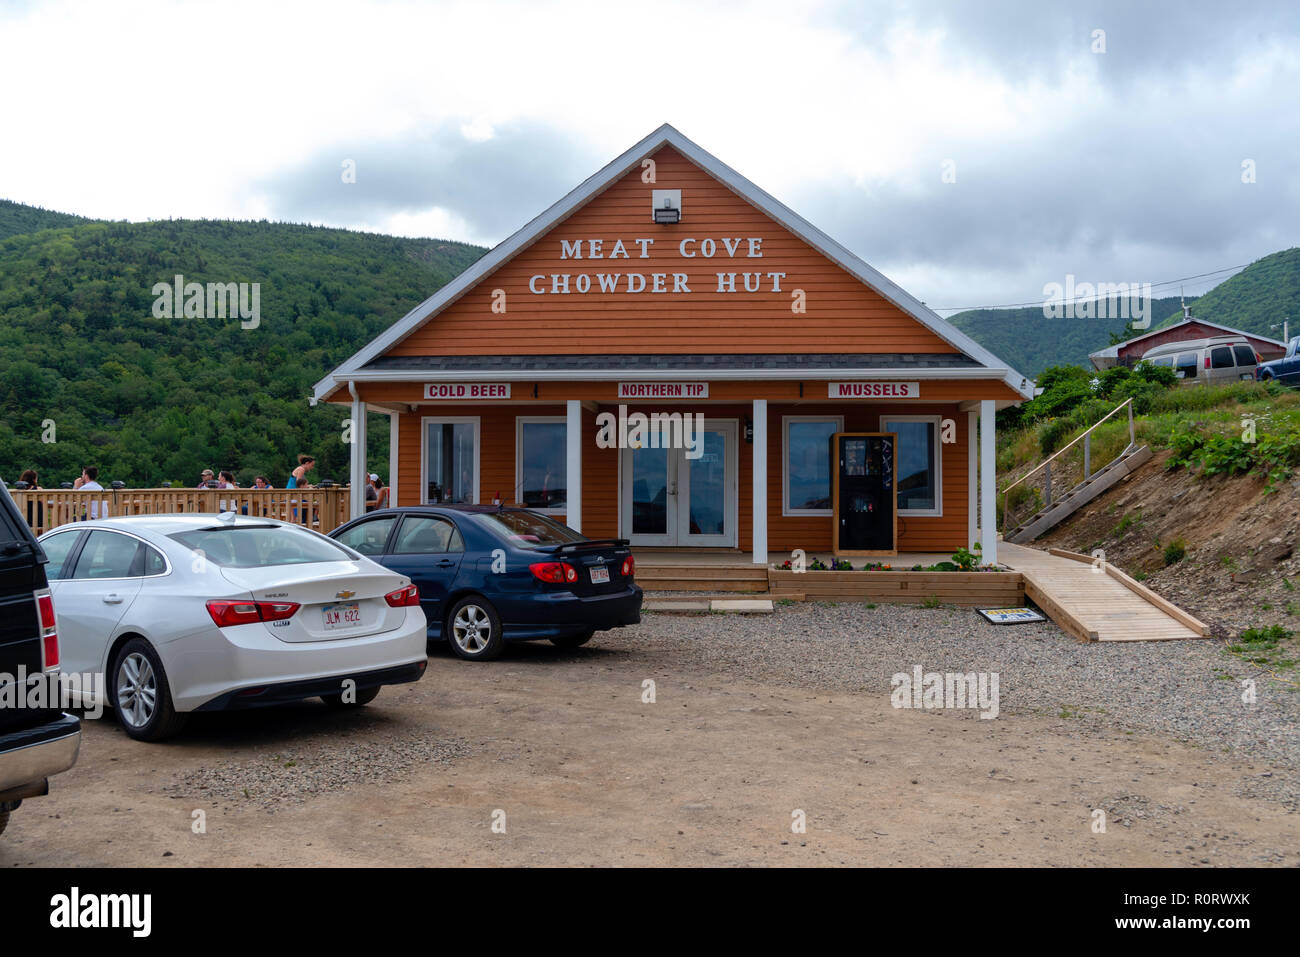 Lunch time at the Meat Cove Chowder Hut, Meat Cove, Nova Scotia, Canada. - Stock Image